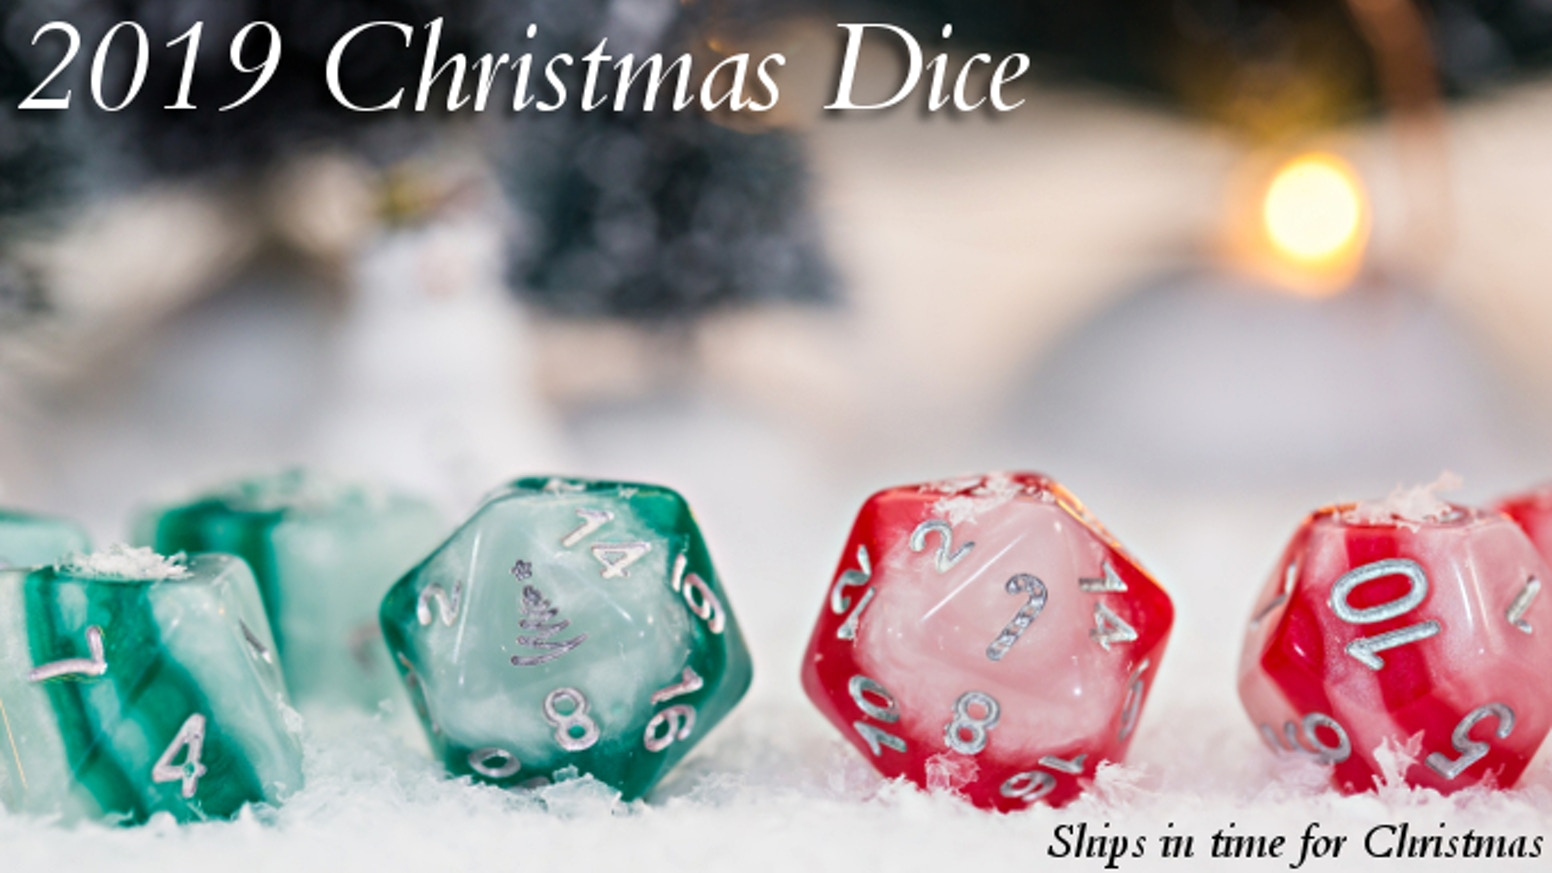 Five-layer Christmas Dice Sets, special to 2019.  Limited Edition, only 500 of each will be produced.  Ships for this Christmas.